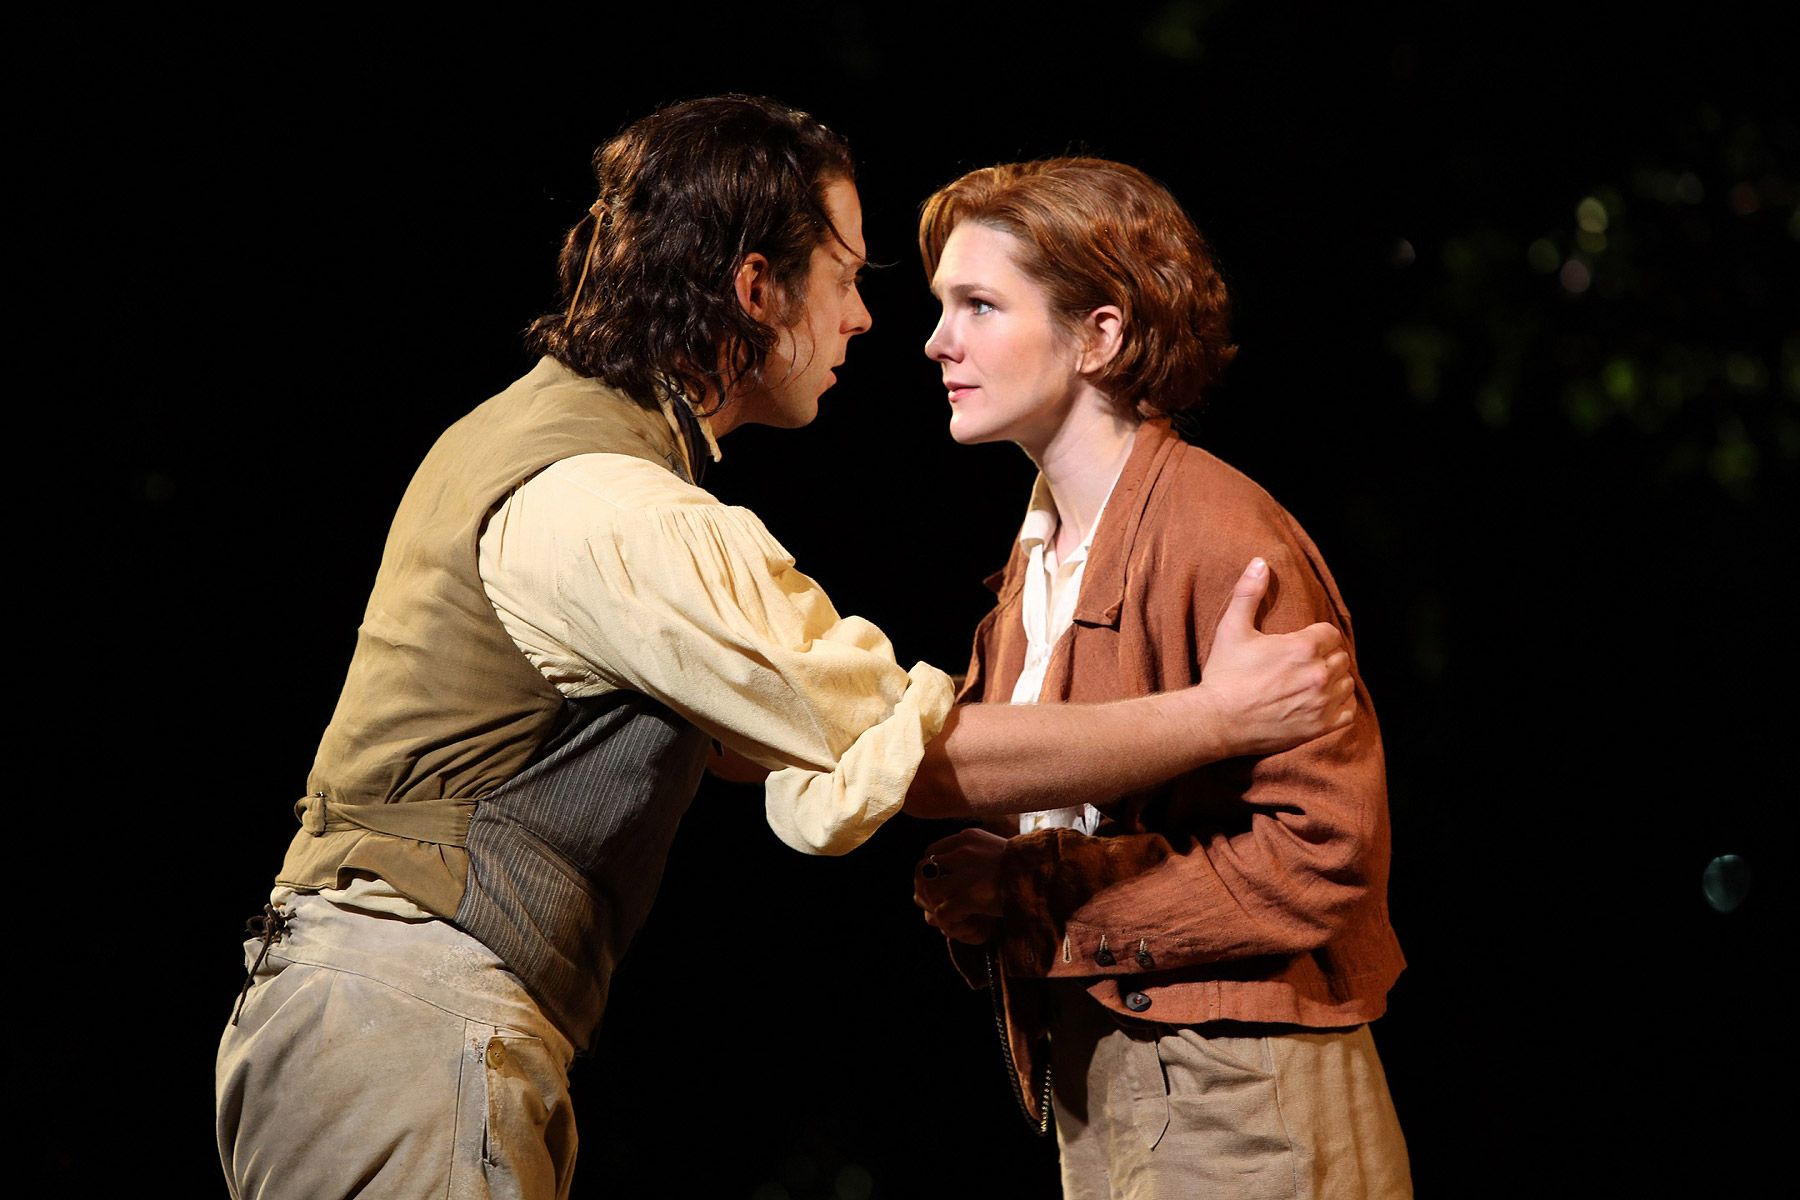 http://media.vogue.com/files/In the lush, green heart of Manhattan, As You Like It's Forest of Arden came to life last night, opening the fiftieth-anniversary season of the Public Theater's Shakespeare in the Park at the Delacorte Theatre.